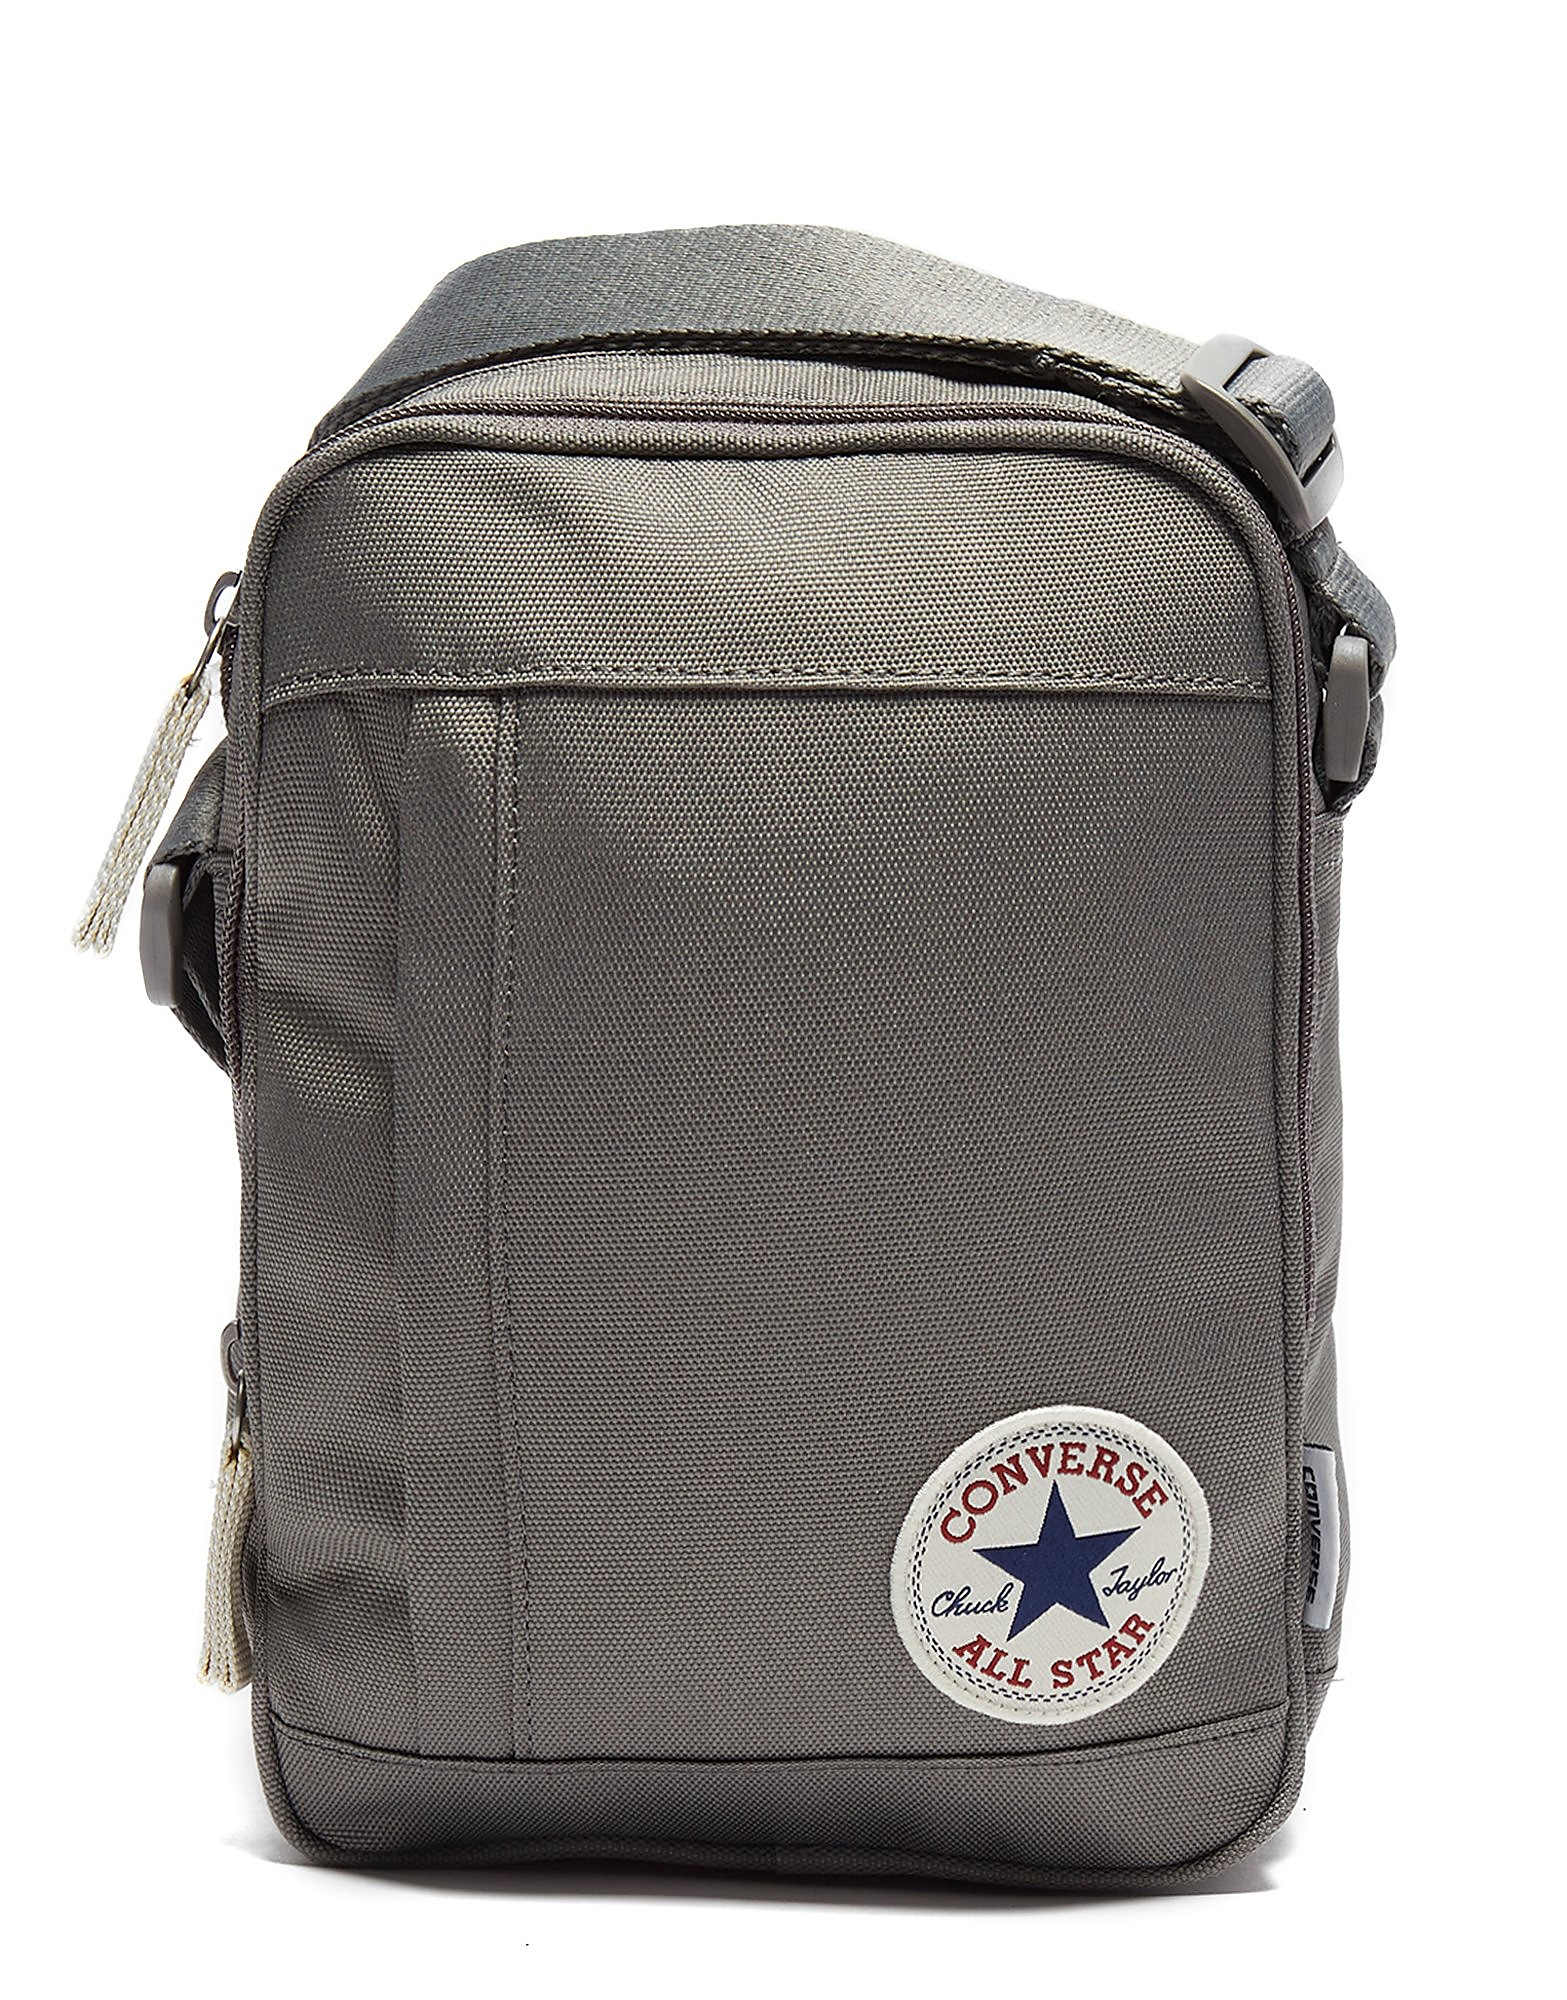 Converse Core Small Items Bag - Charcoal - Mens - Sports King Store 06a40dbef3585